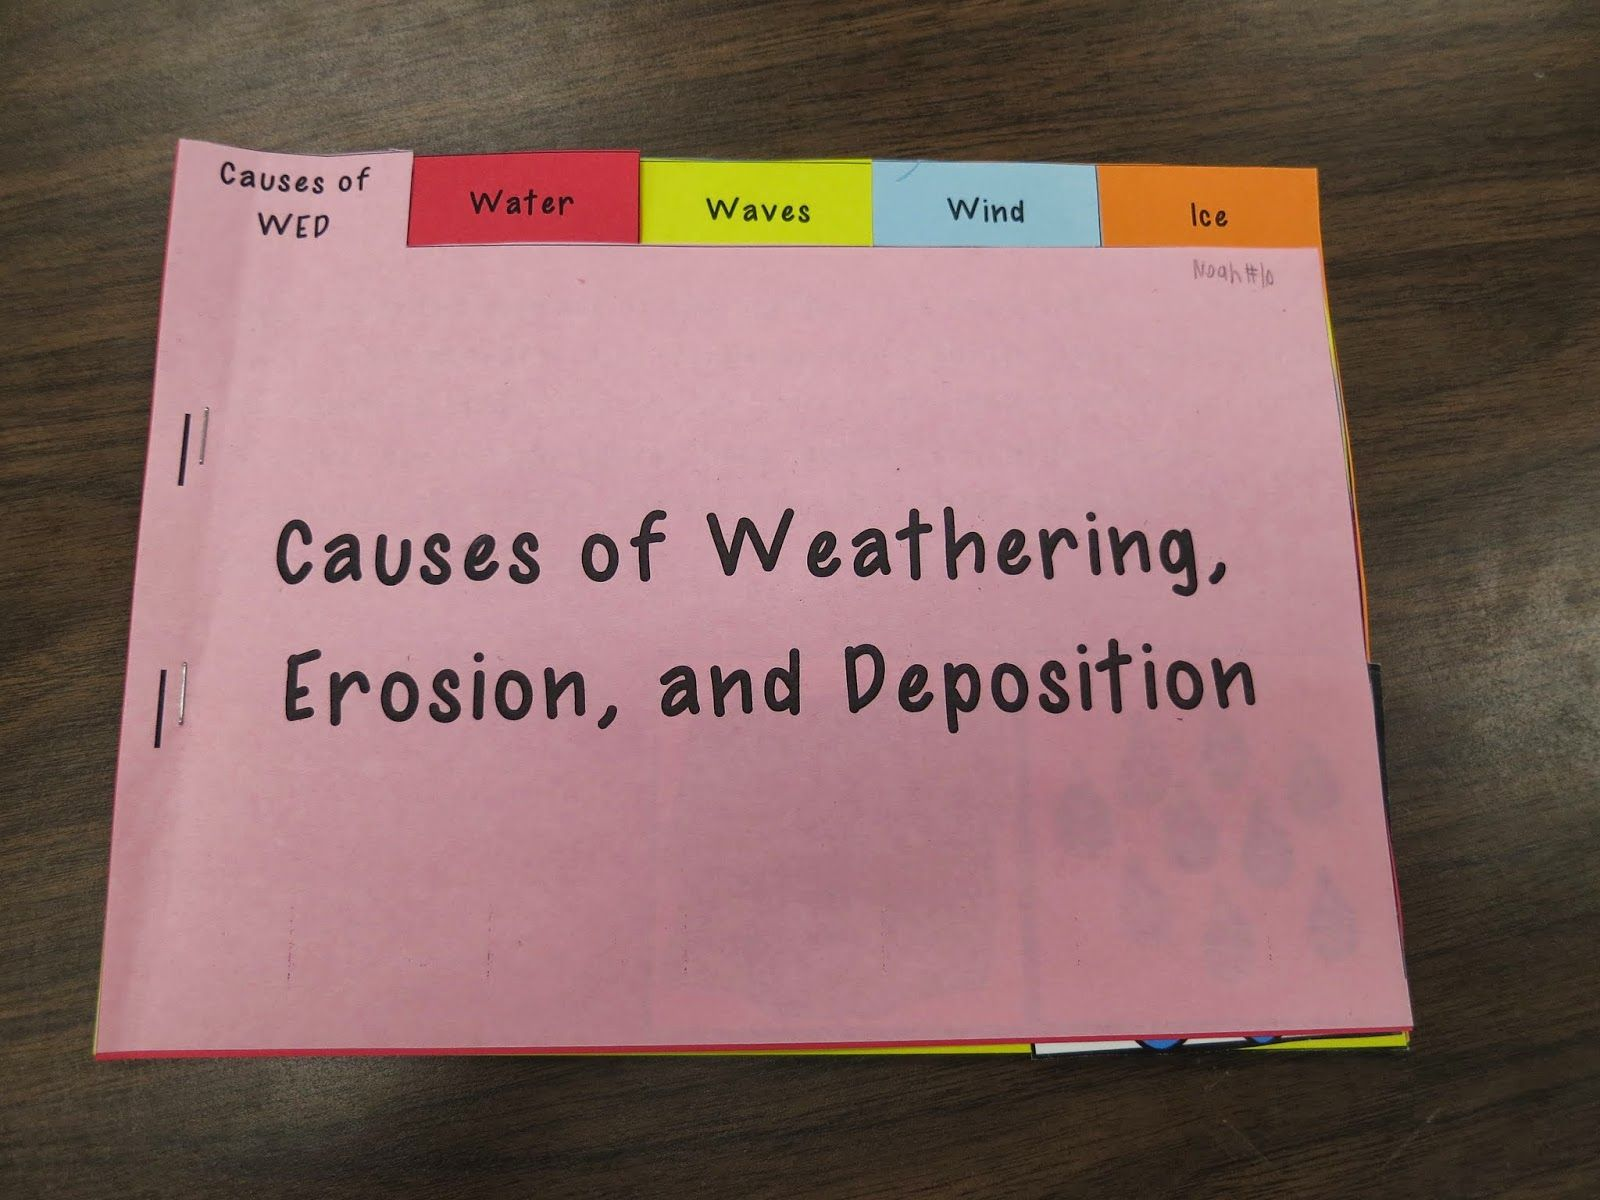 Worksheets Weathering And Erosion Worksheets For Kids tearless teaching weathering erosion and deposition tabbed book book